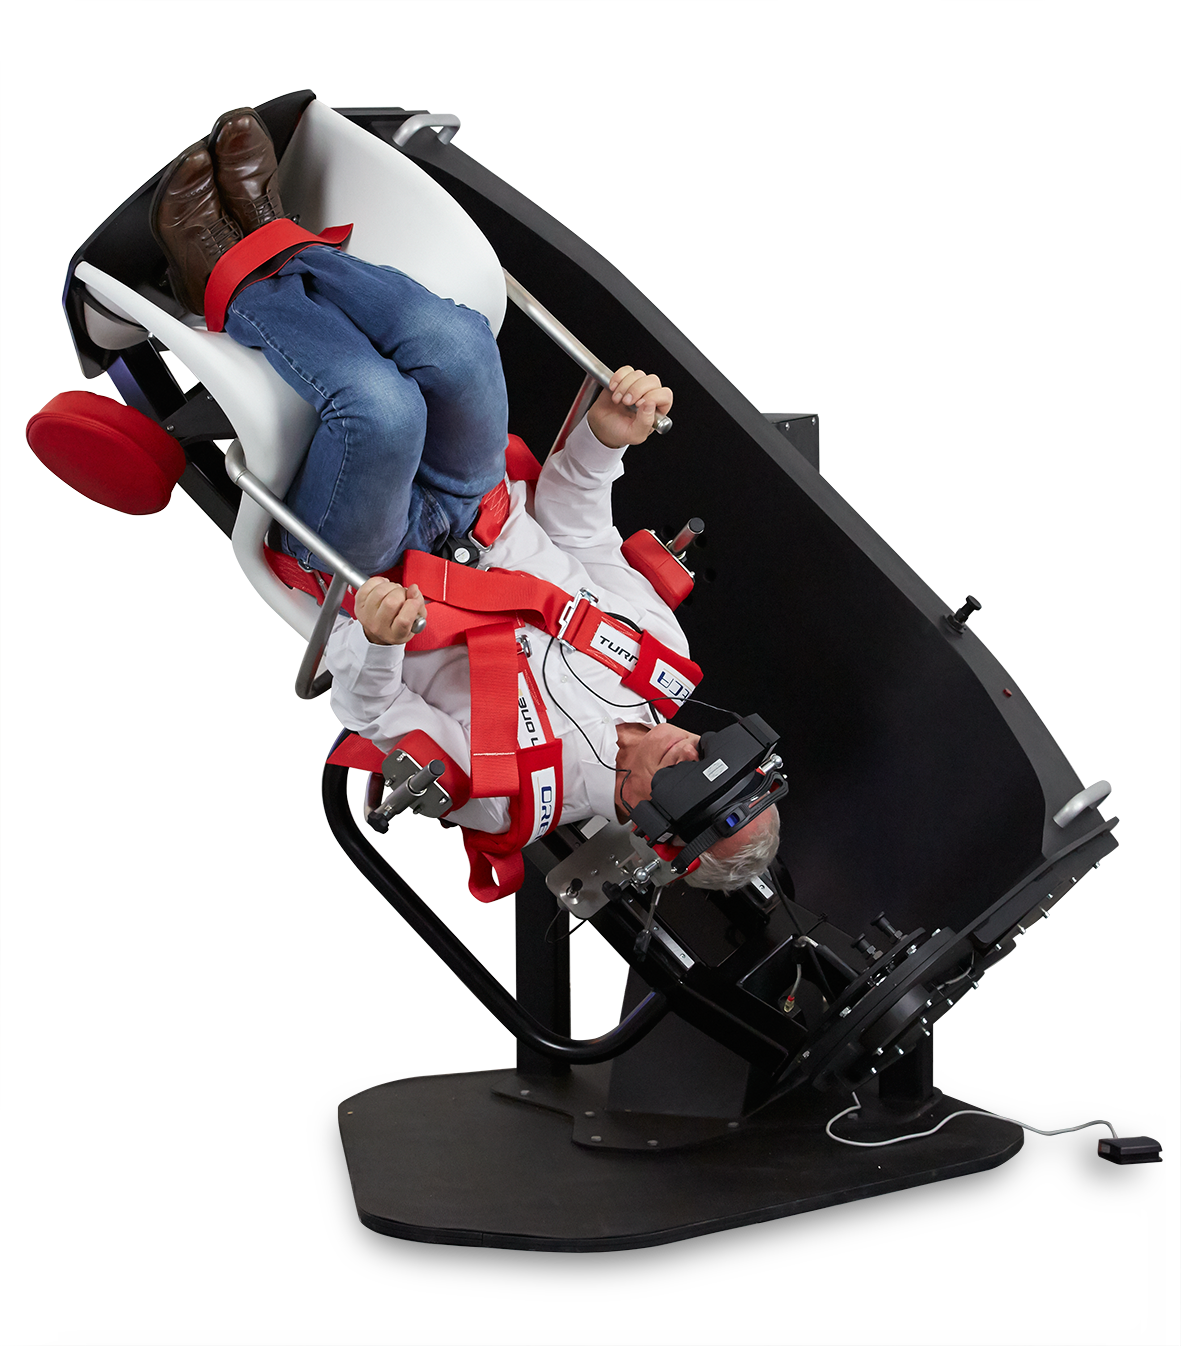 The TRV Chair is designed for diagnosis and treatment of Benign Paroxysmal Positional Vertigo (BPPV)